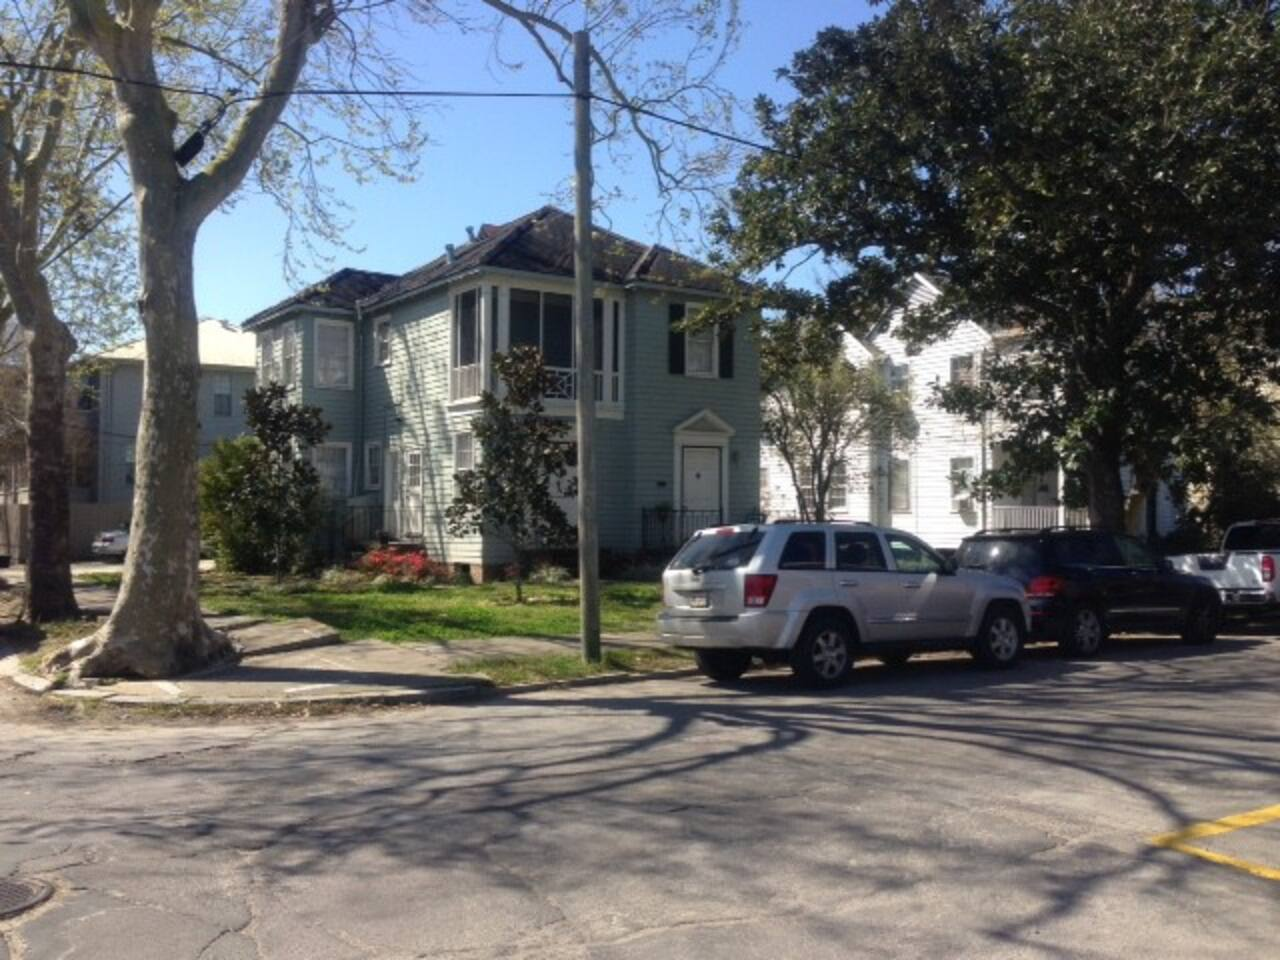 Beautiful Neighborhood, apartment is entire 2nd floor or the carriage house in the rear of this home.